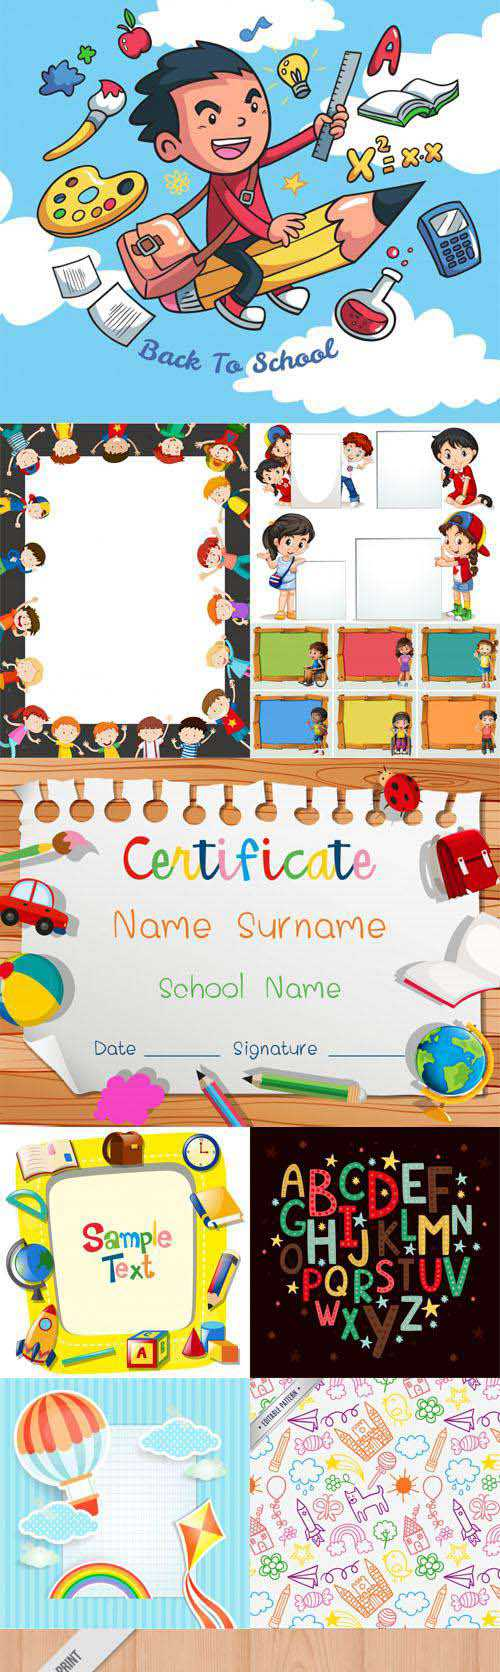 10 Kids Templates Collection in Vector